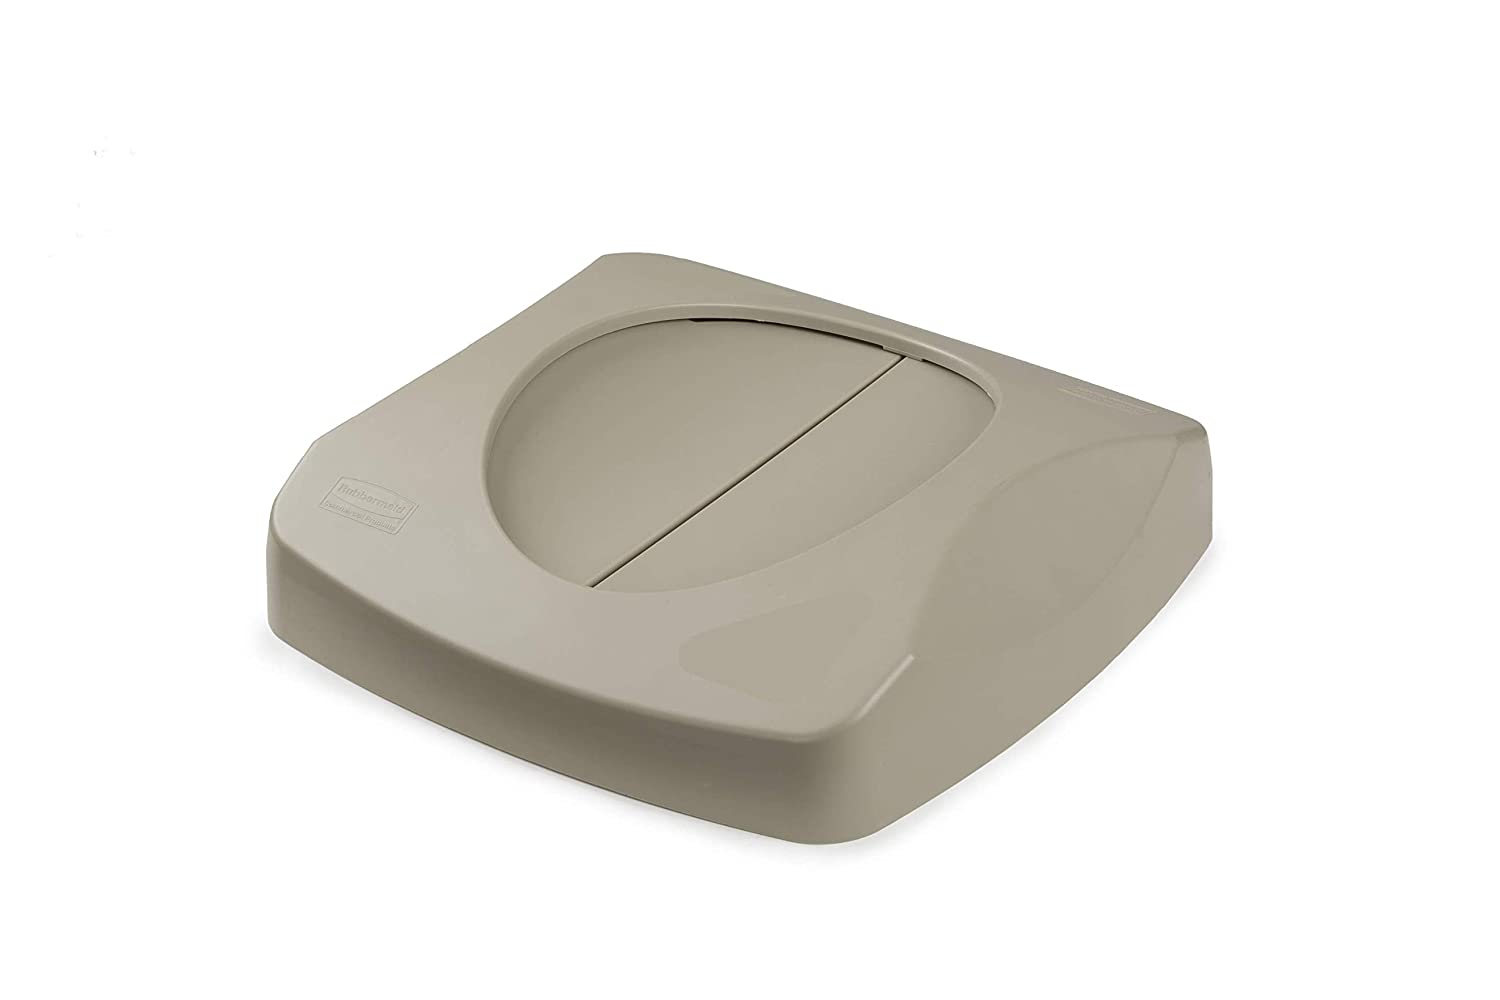 Rubbermaid Commercial Products Untouchable Trash/Recycling Swing Lid, Beige (FG268988BEIG)